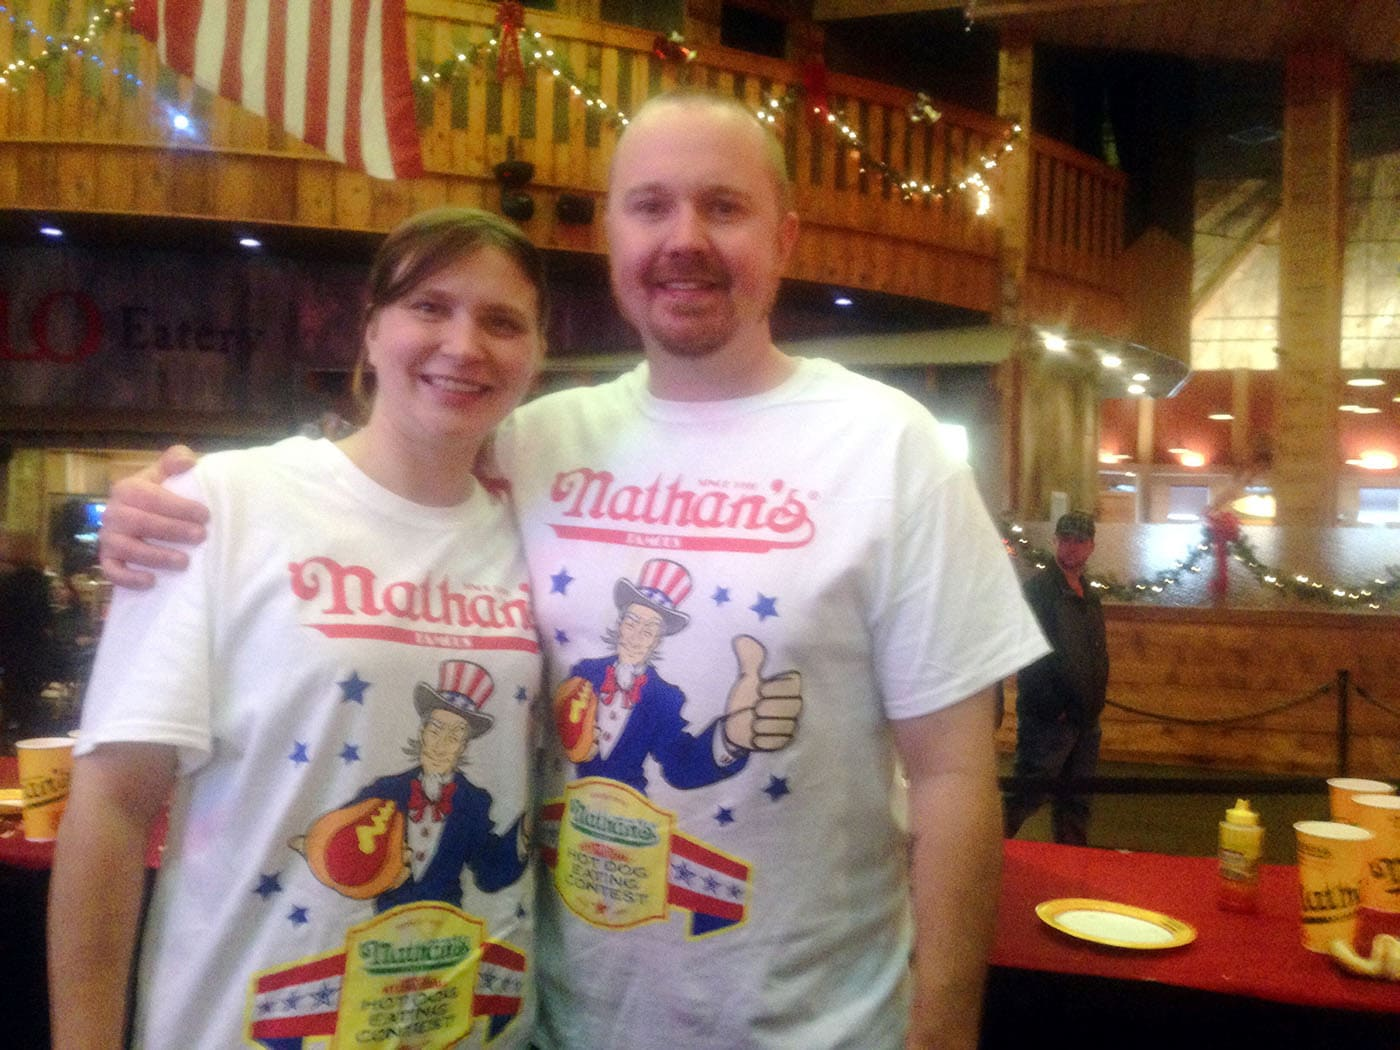 Nathan's Famous hot dog eating contest qualifier 2014 in Tunica, Mississippi.